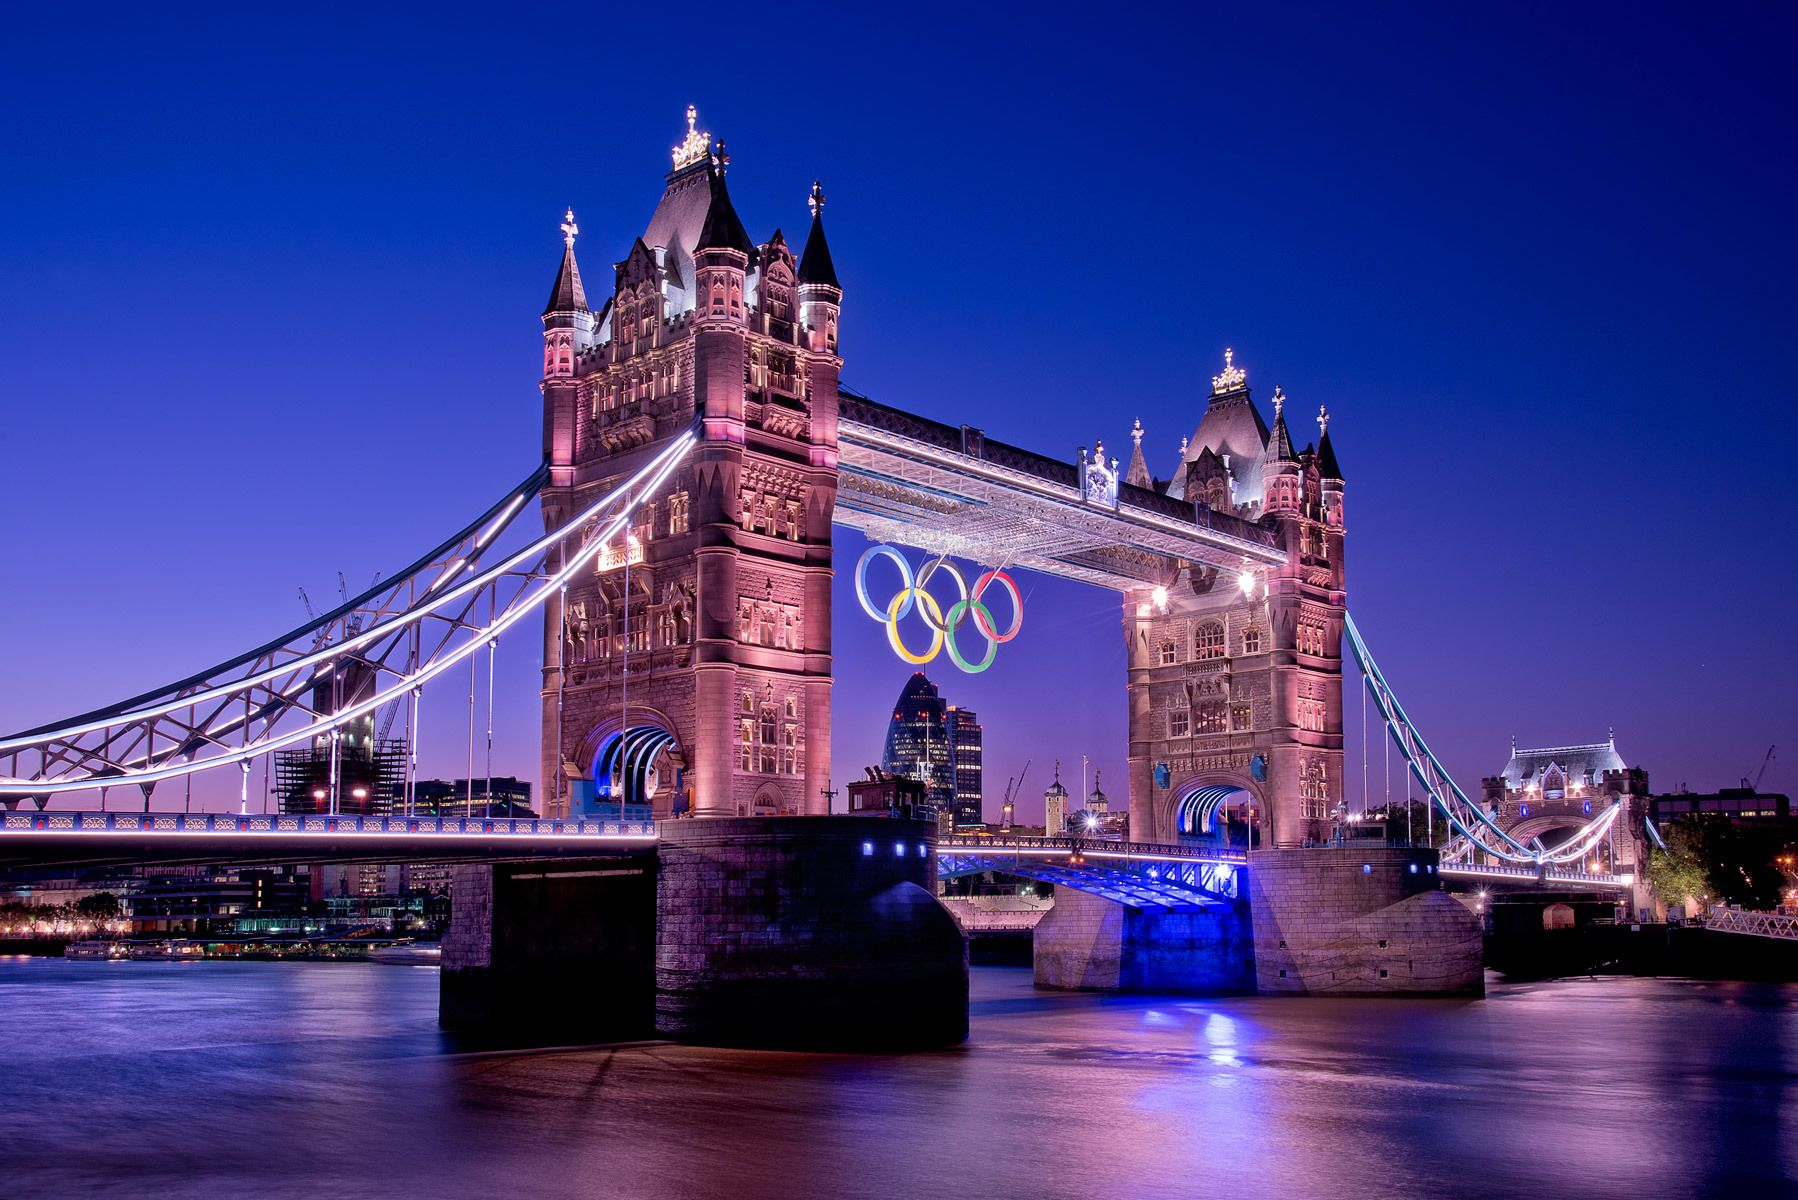 Tower Bridge, 2012 London Olympics